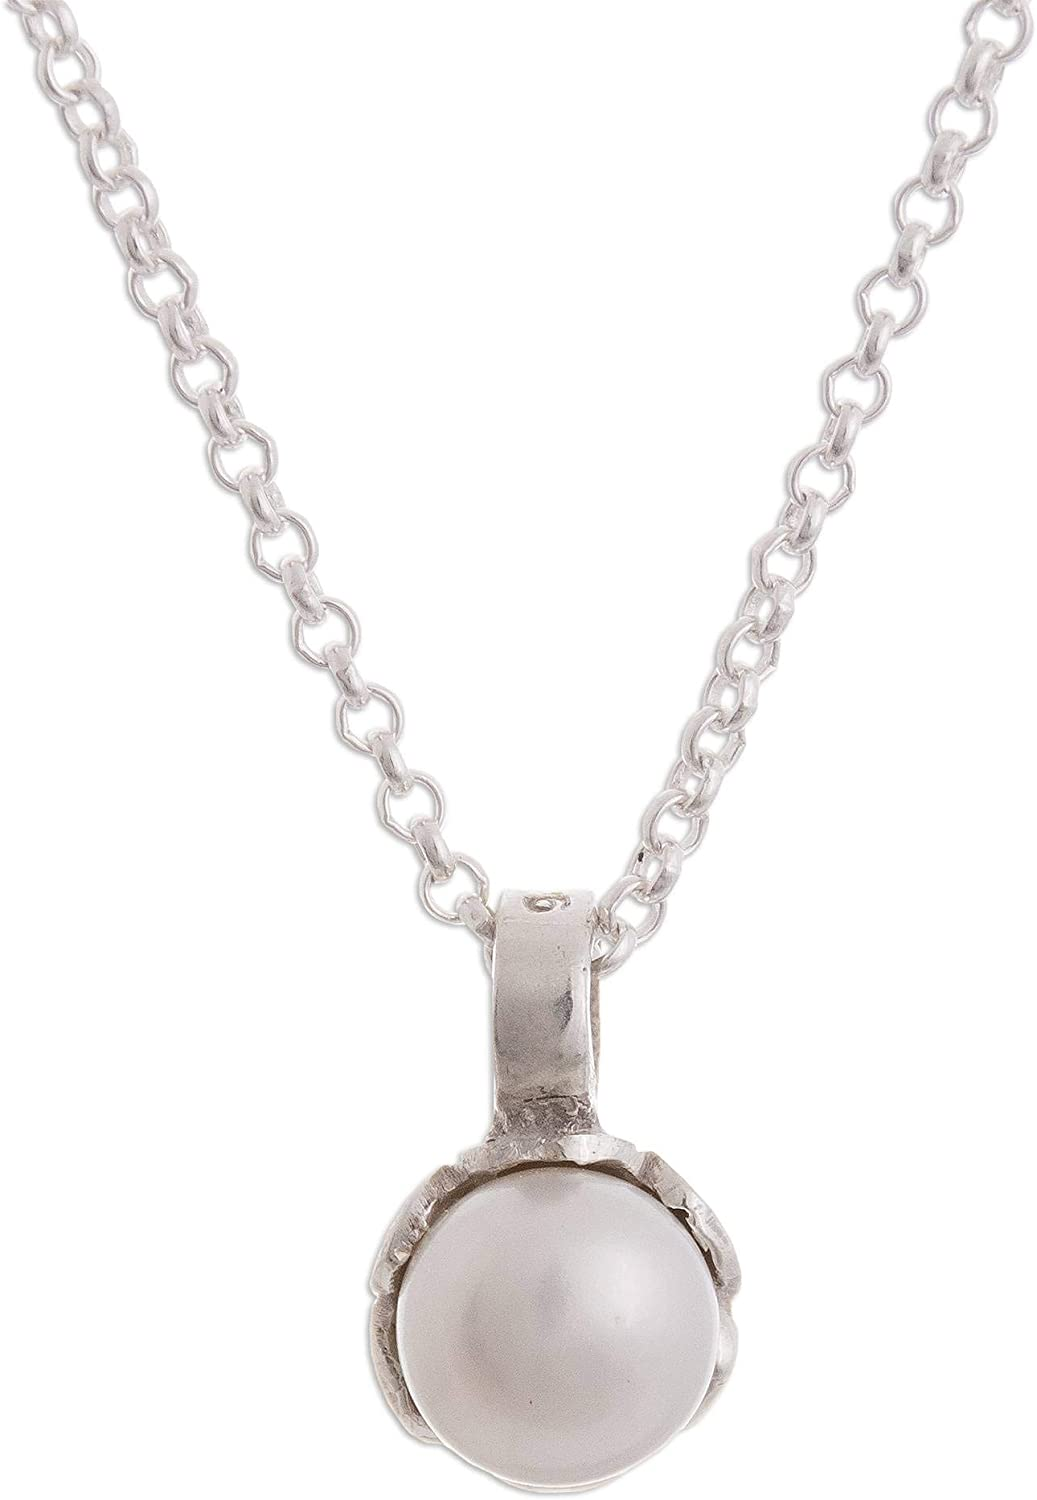 NOVICA White Cultured Freshwater Pearl .925 Silver Necklace, 17.75